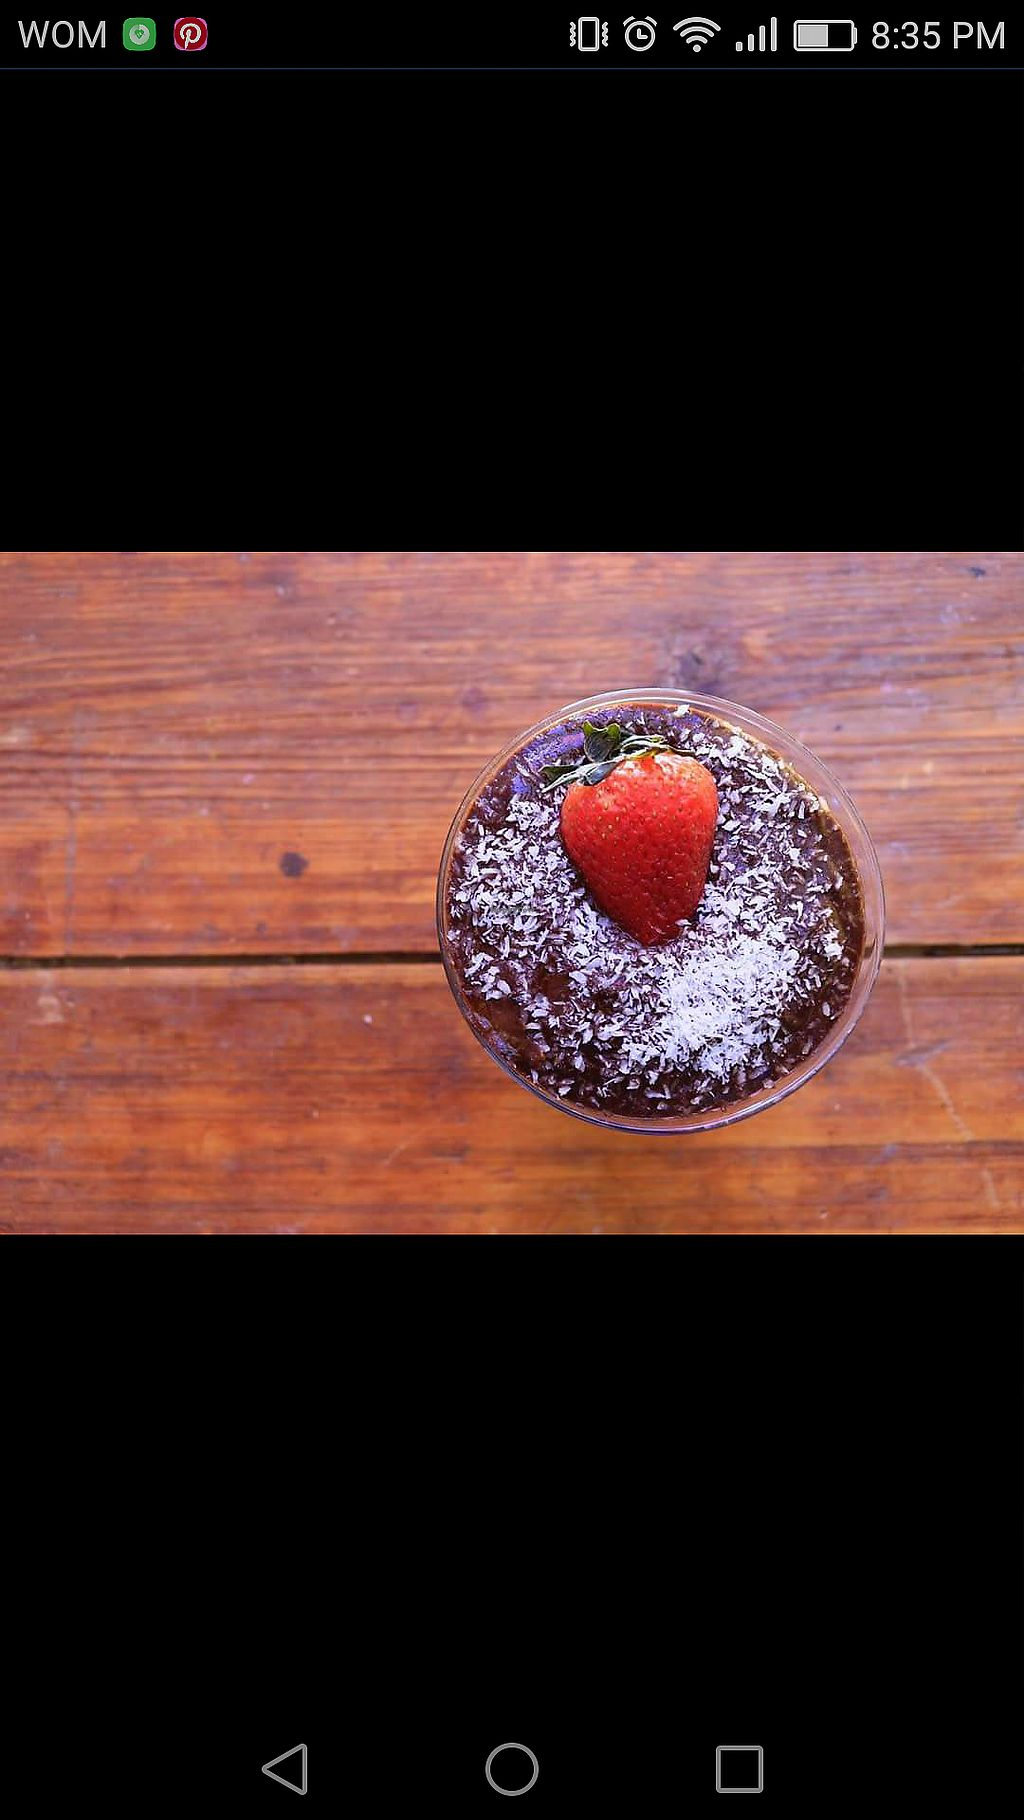 """Photo of Napas  by <a href=""""/members/profile/Margo01"""">Margo01</a> <br/>Vegan chocolate pudding with coconut shavings and strawberry <br/> November 3, 2017  - <a href='/contact/abuse/image/104241/321557'>Report</a>"""